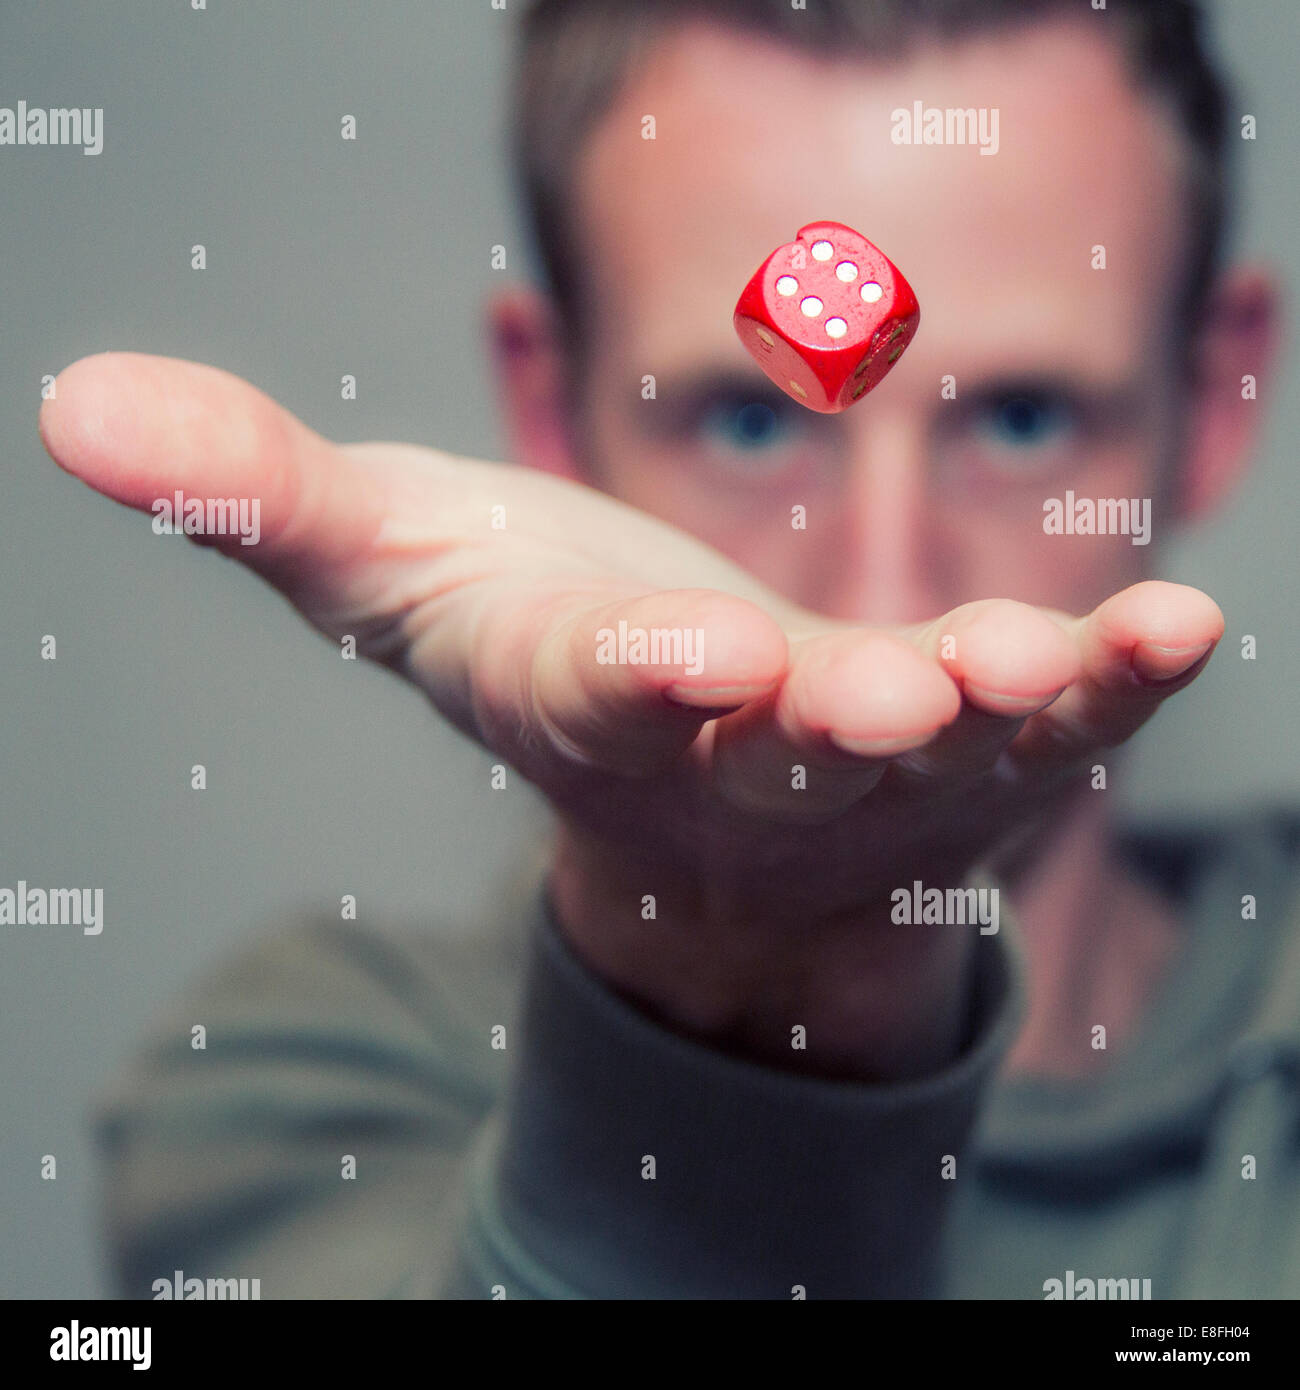 Man throwing dice in air - Stock Image